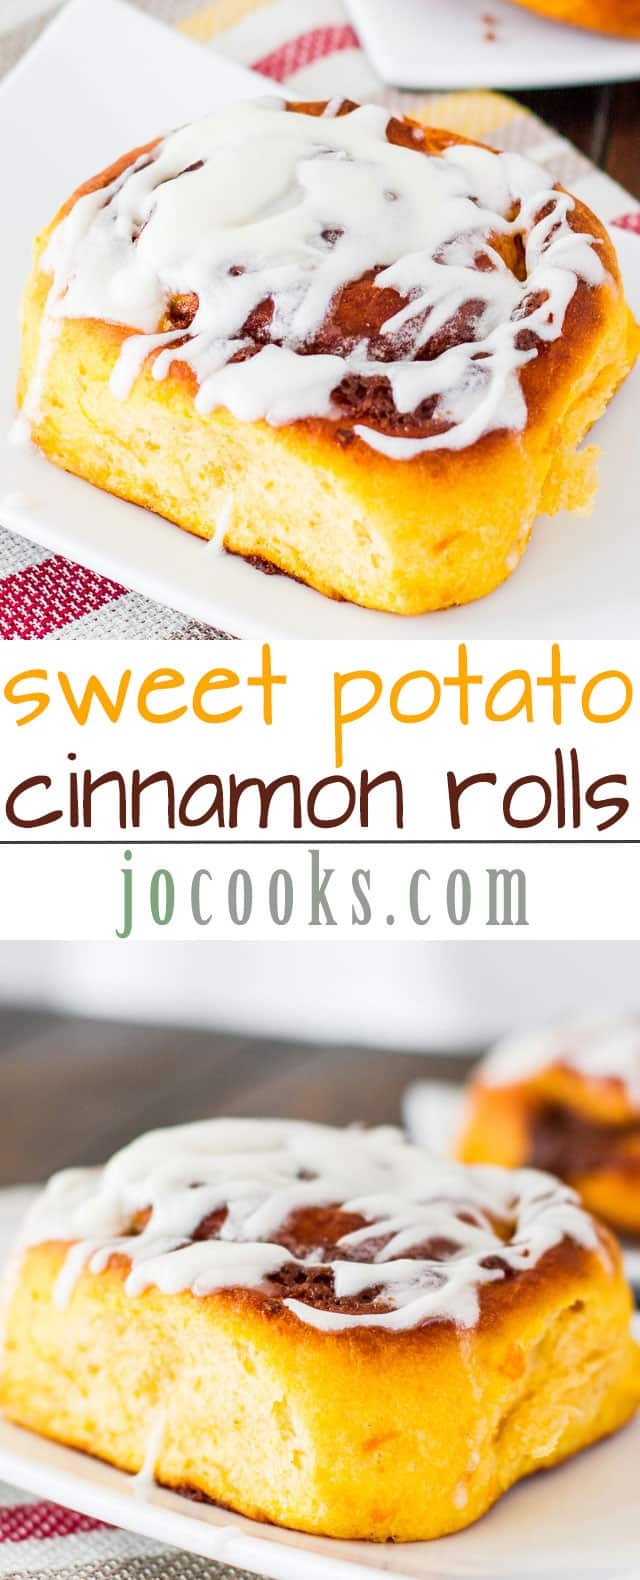 sweet-potato-cinnamon-rolls-collage